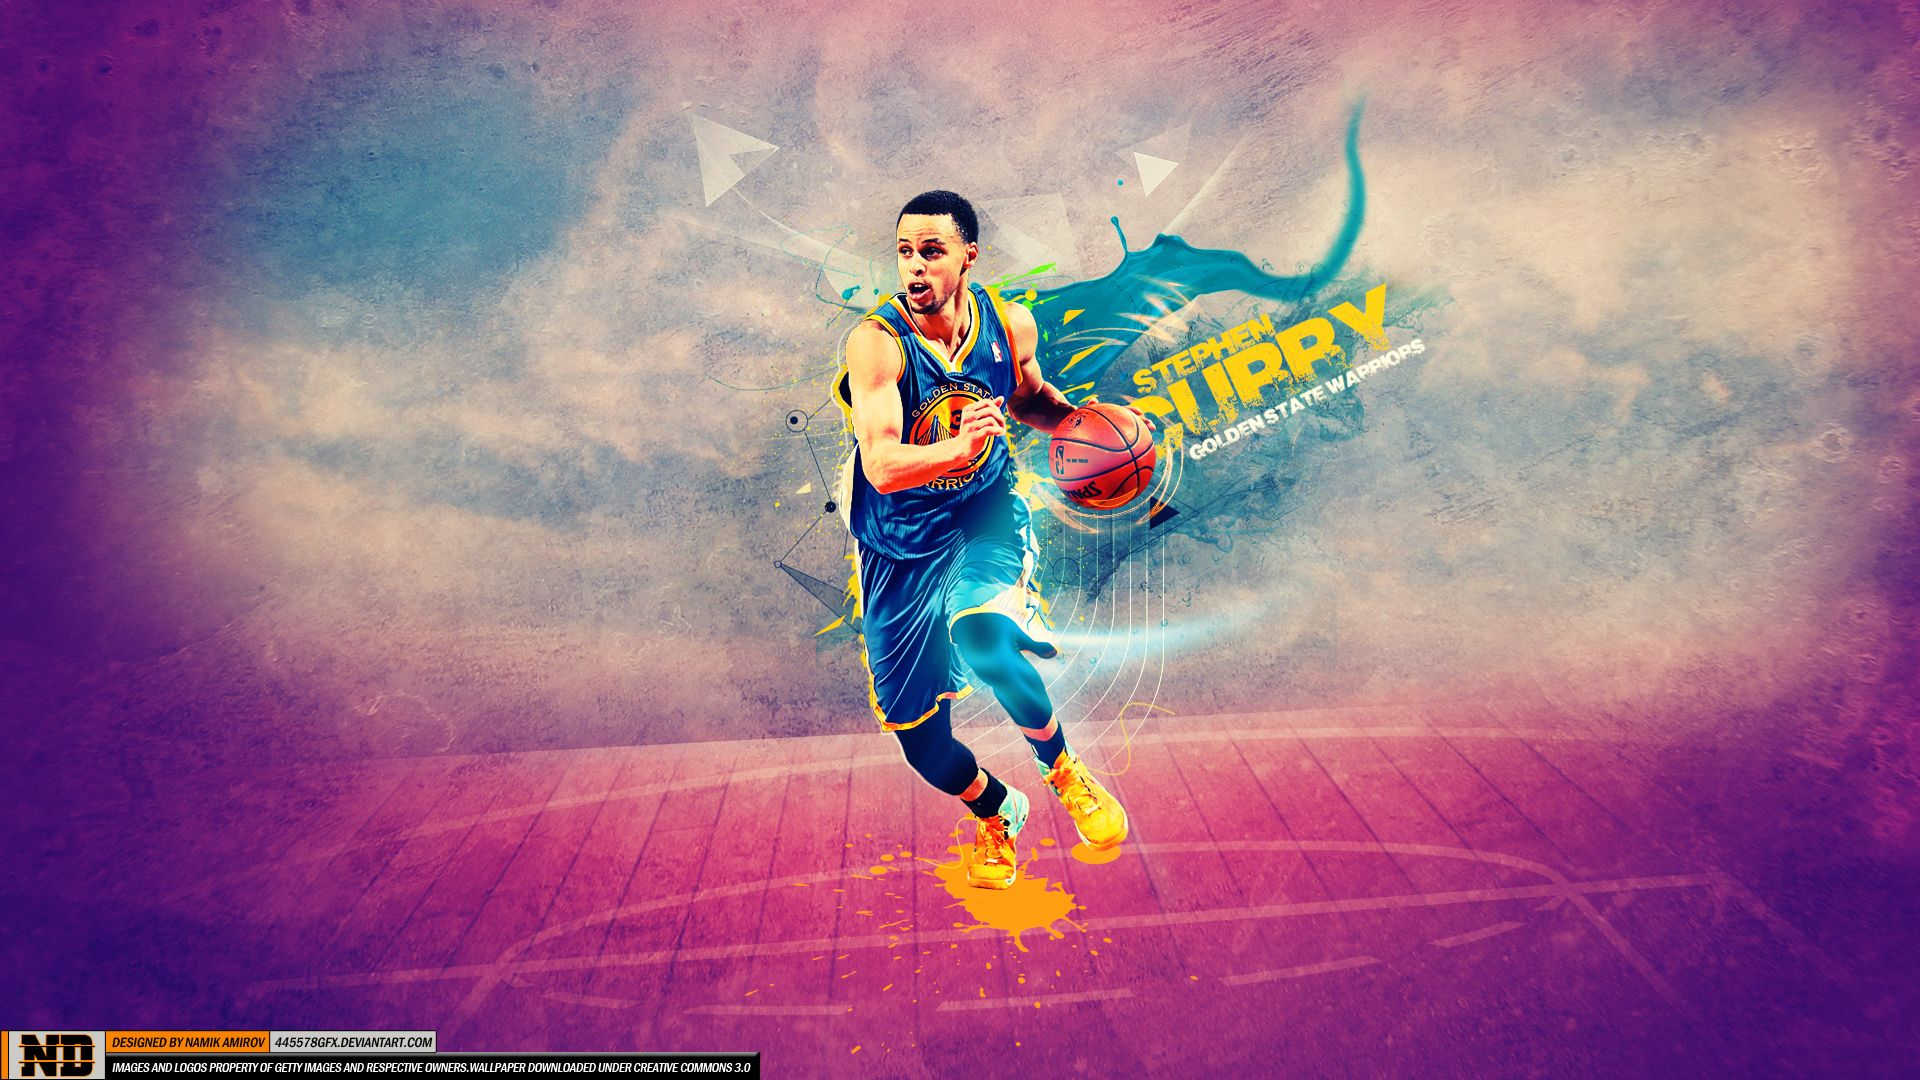 Stephen Curry Wallpaper DS07 Shooting Iphone Splash